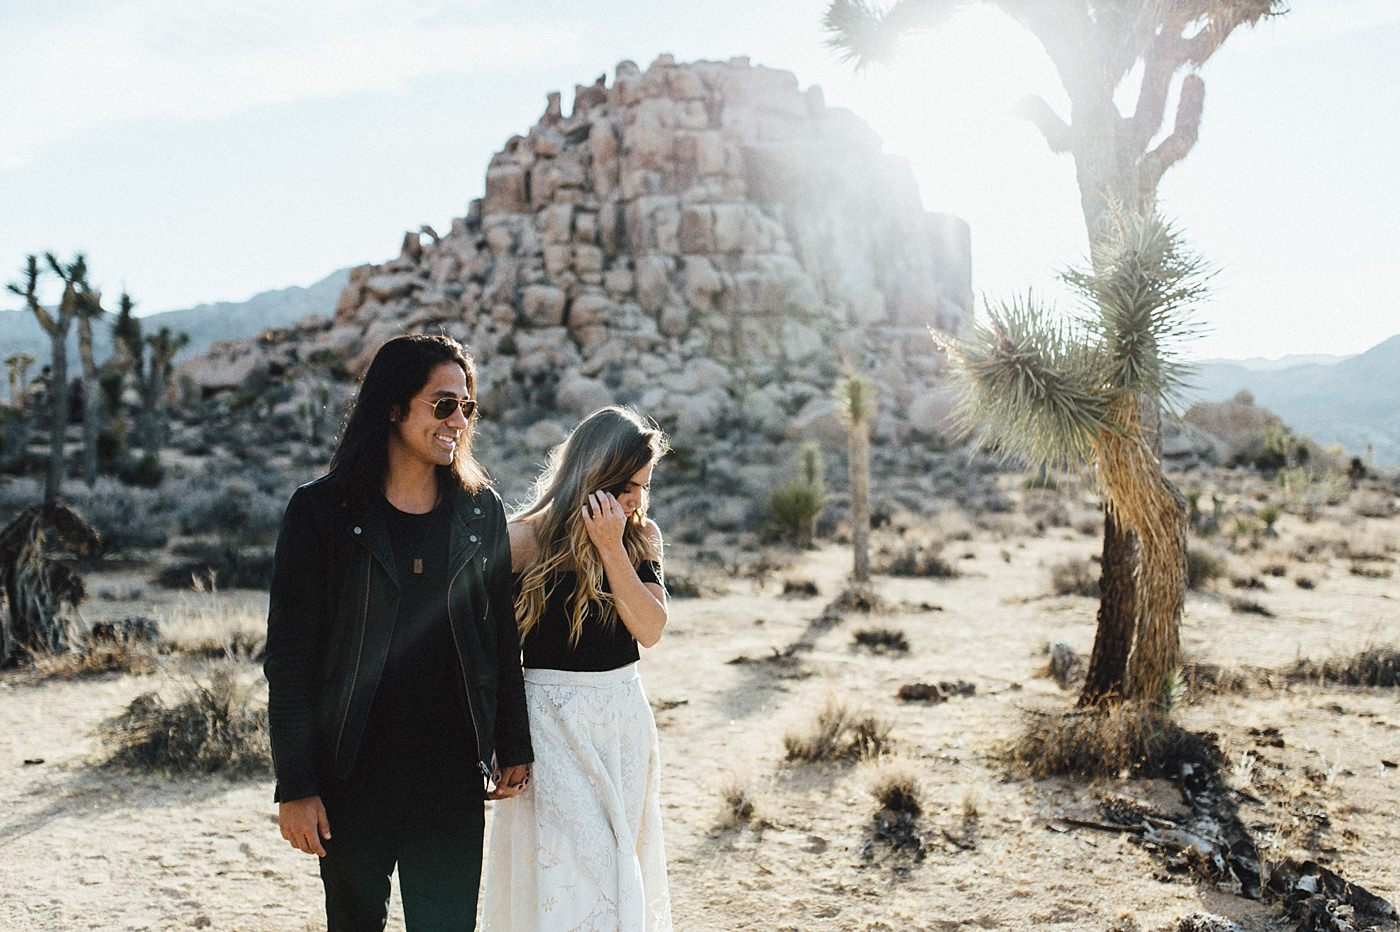 international-elopement-photographer_0154 Kinsey & Josh & Banjo Photographer in Joshuatreeinternational elopement photographer 0154